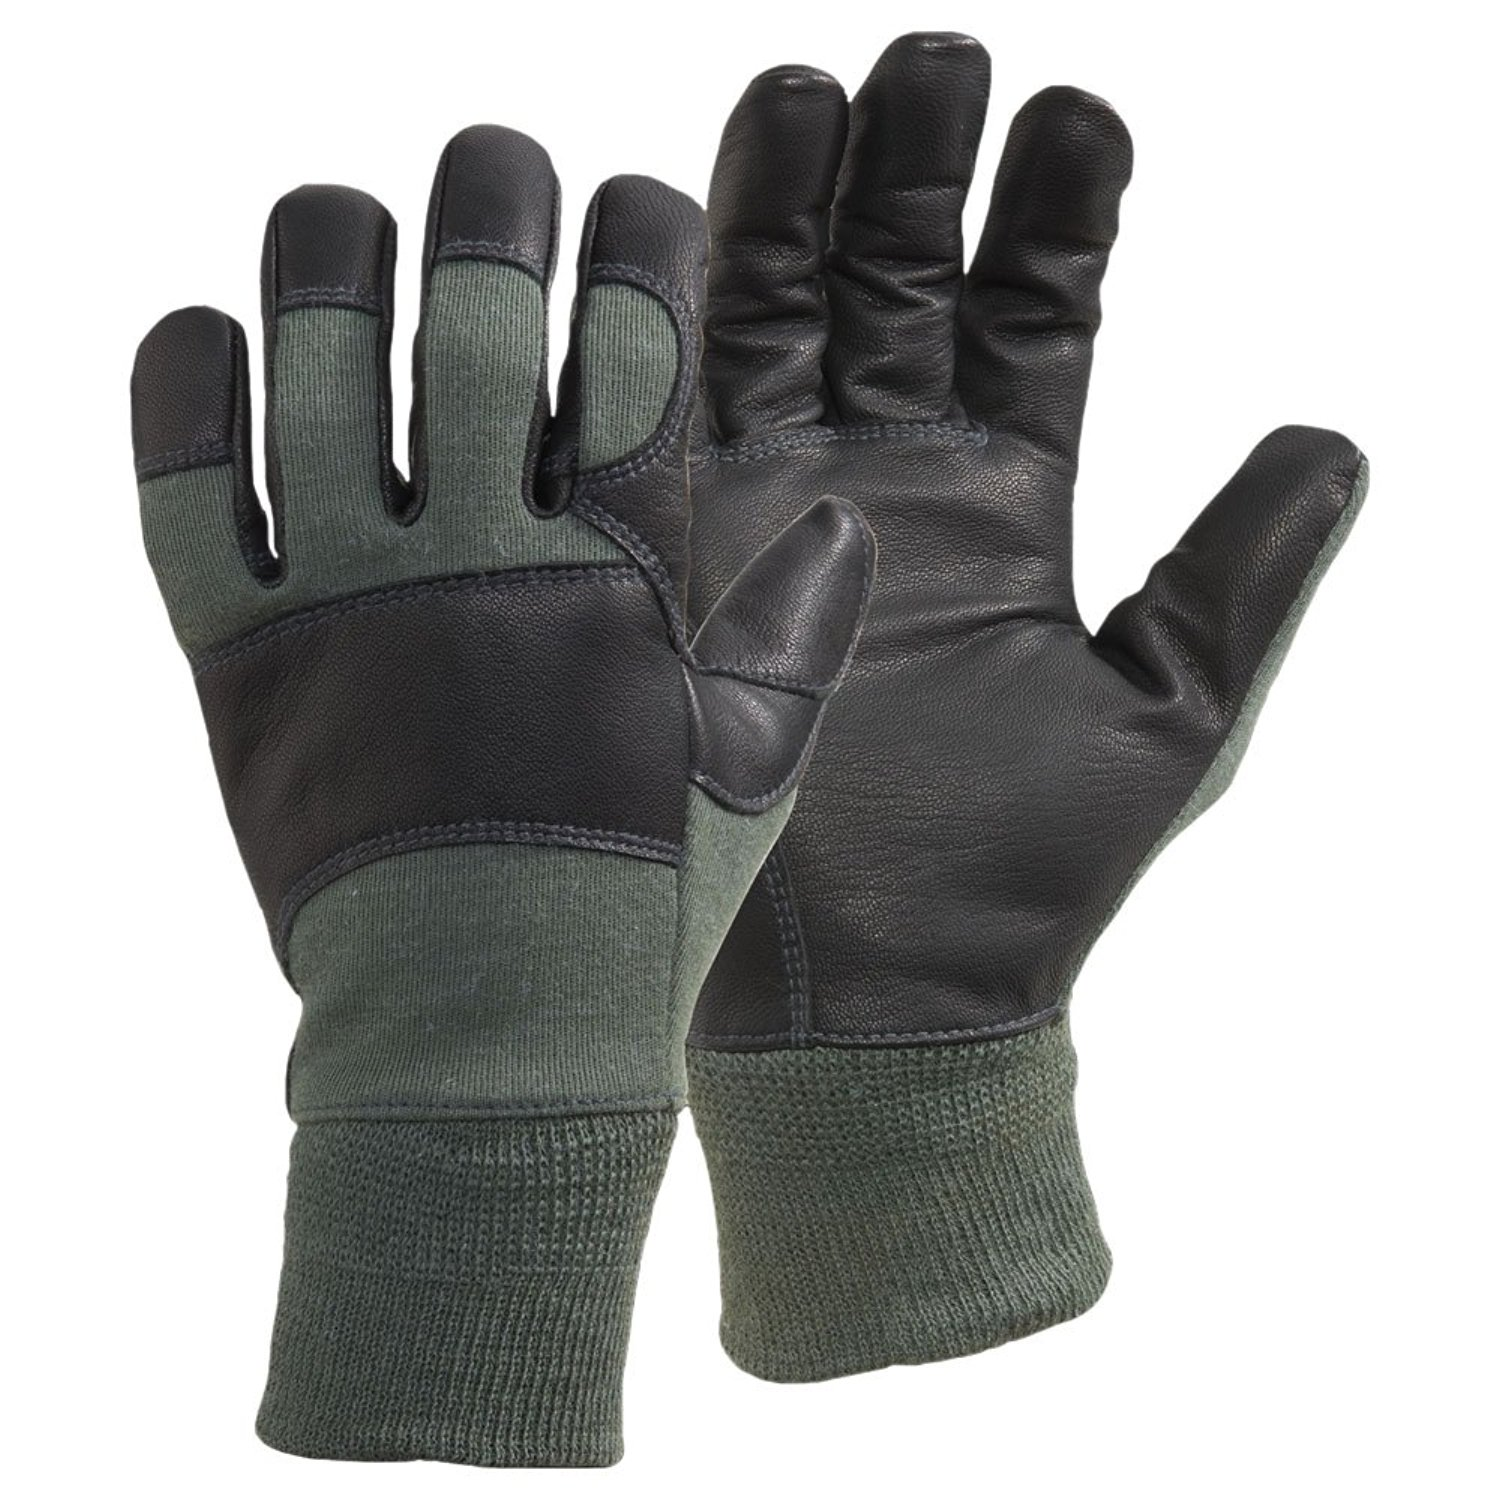 Camelbak Fire Resistant MXC Combat Gloves Sage Green Military Kevlar